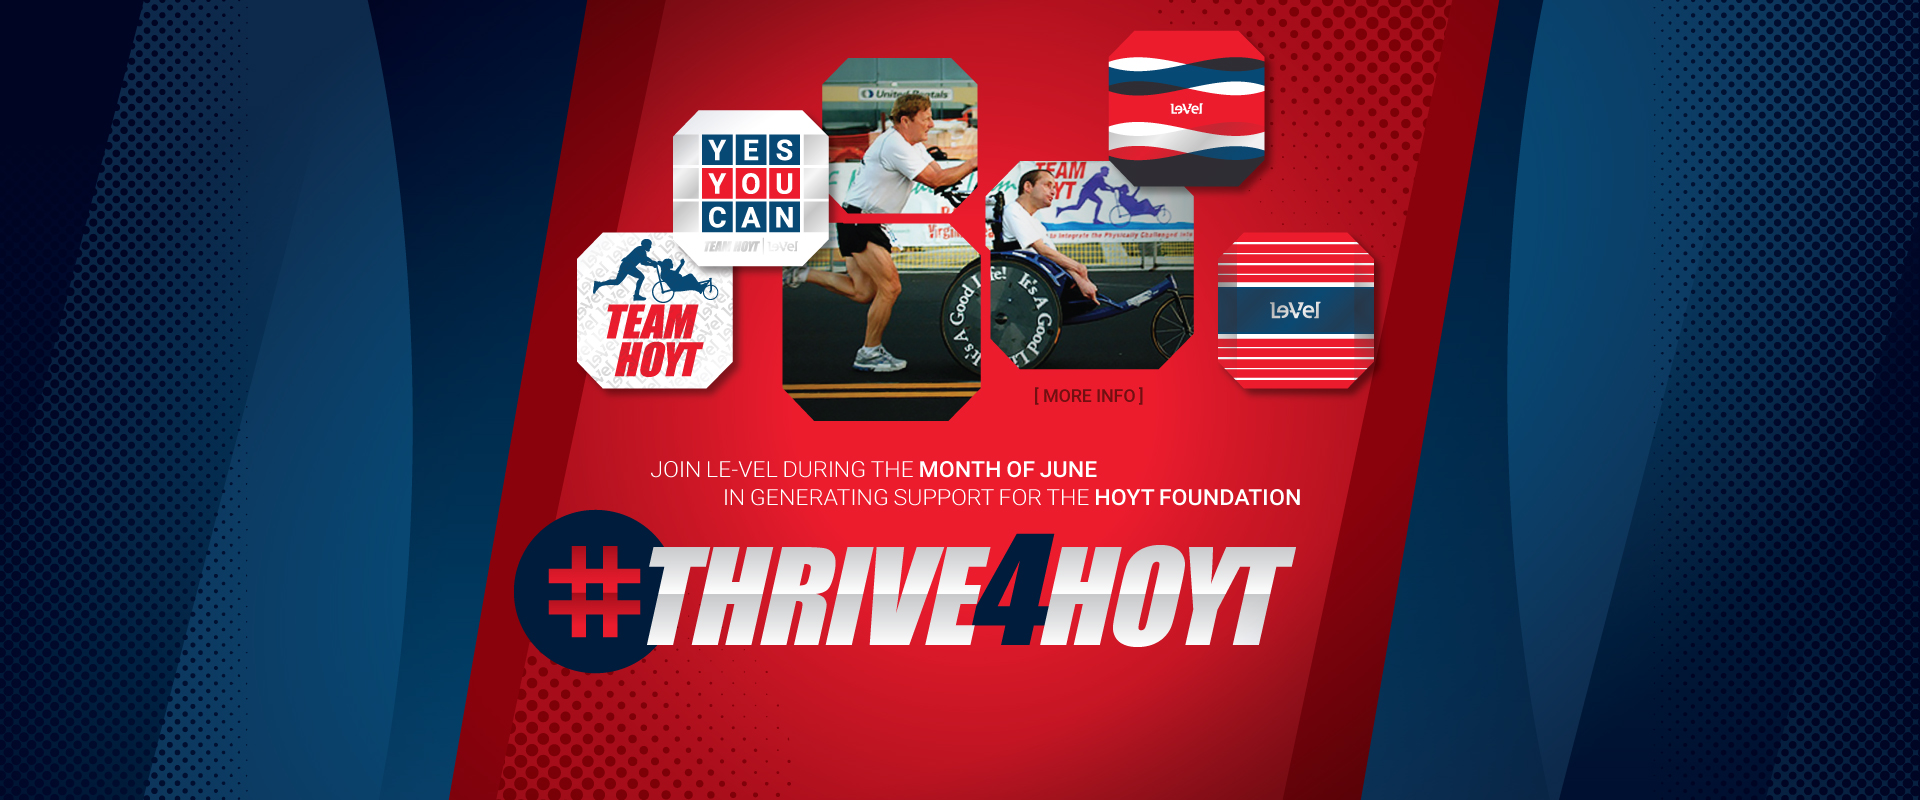 Thrive Hoyt